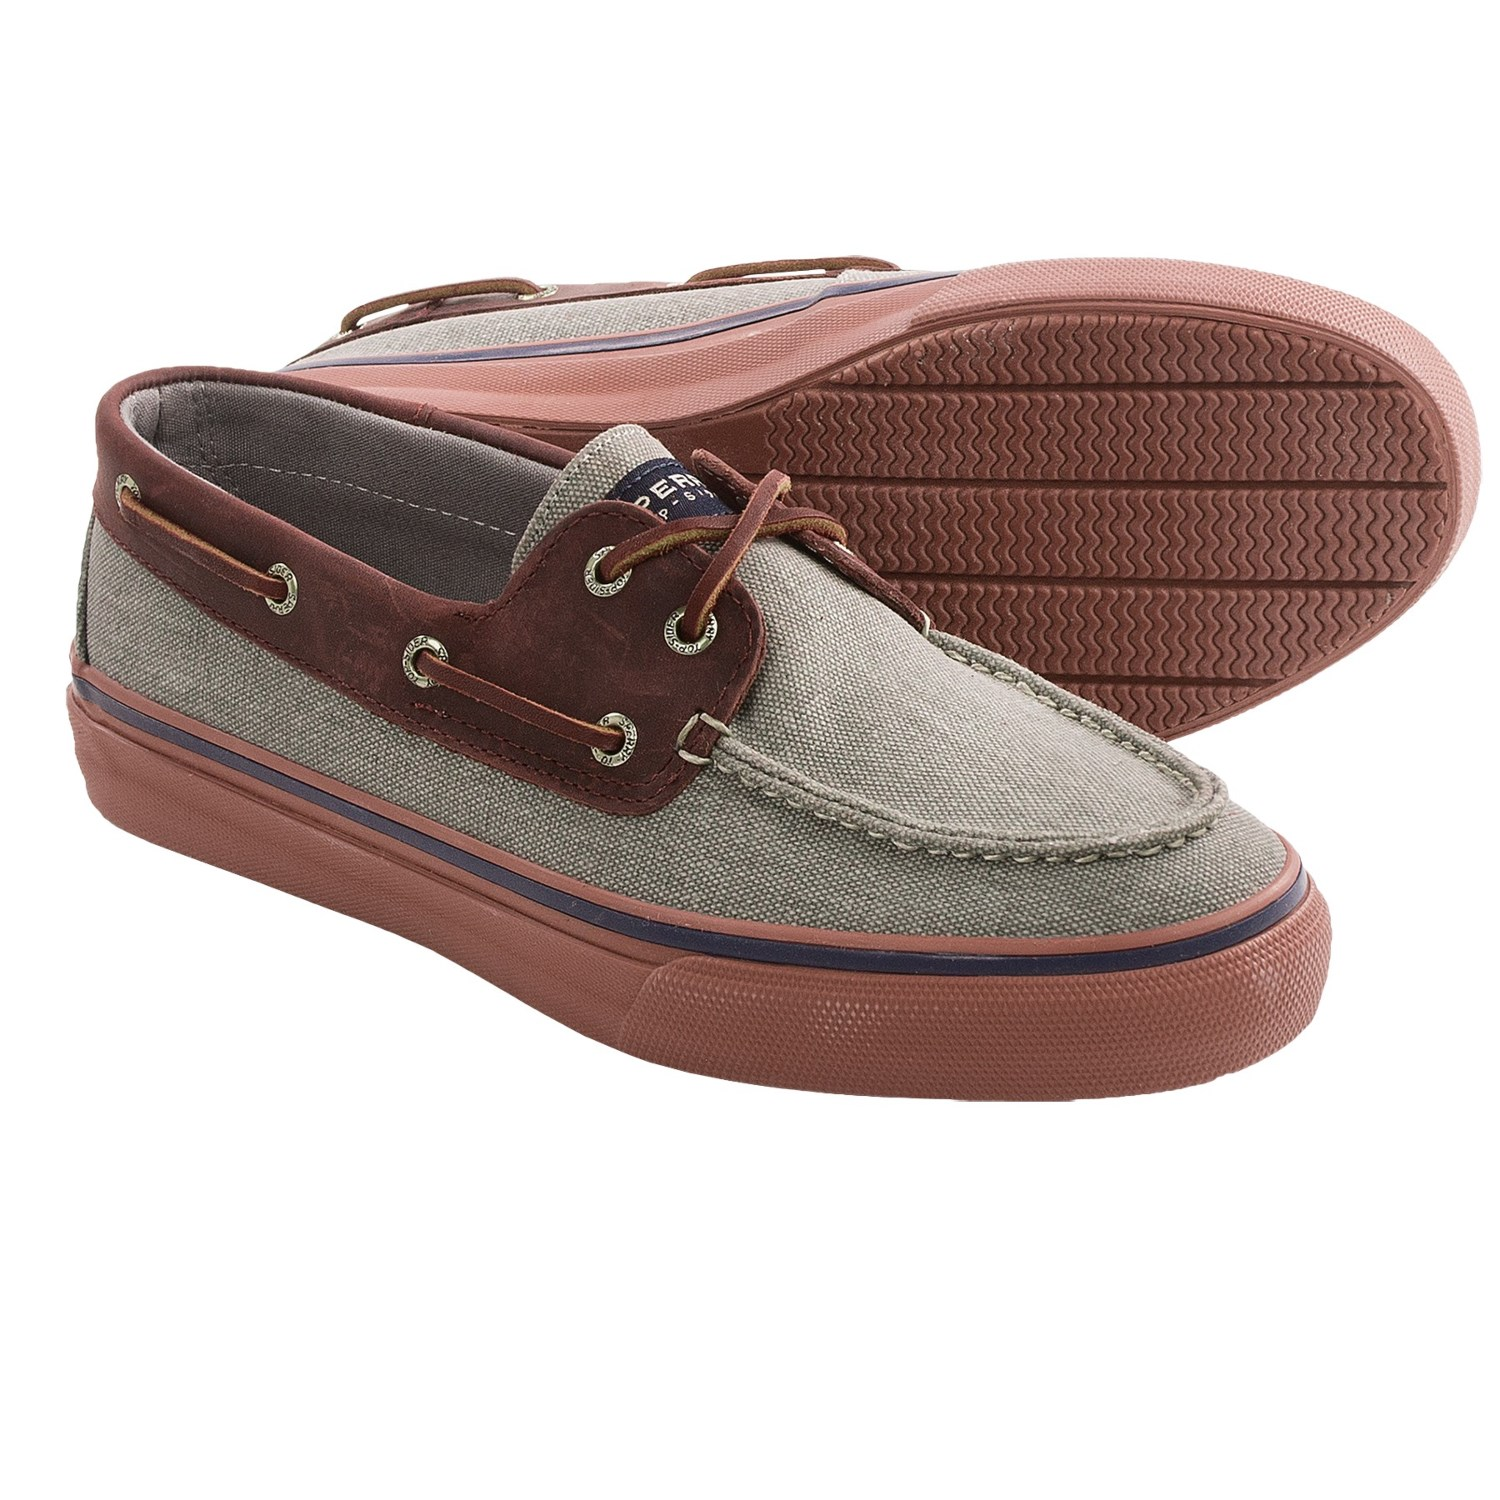 sperry top sider bahama boat shoes canvas leather for